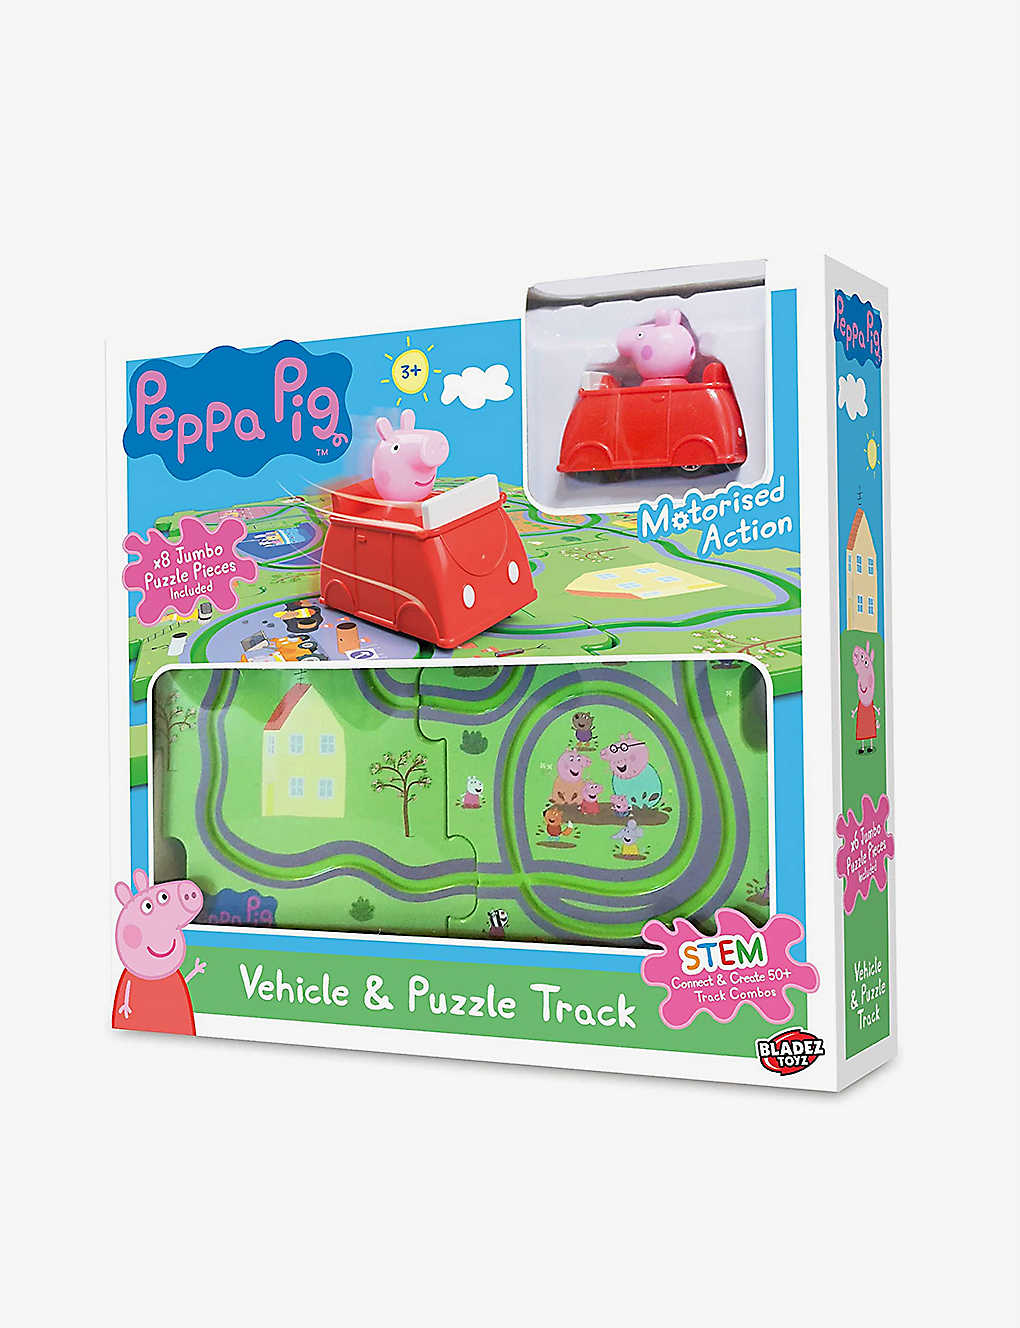 PEPPA PIG: Tile track and play set